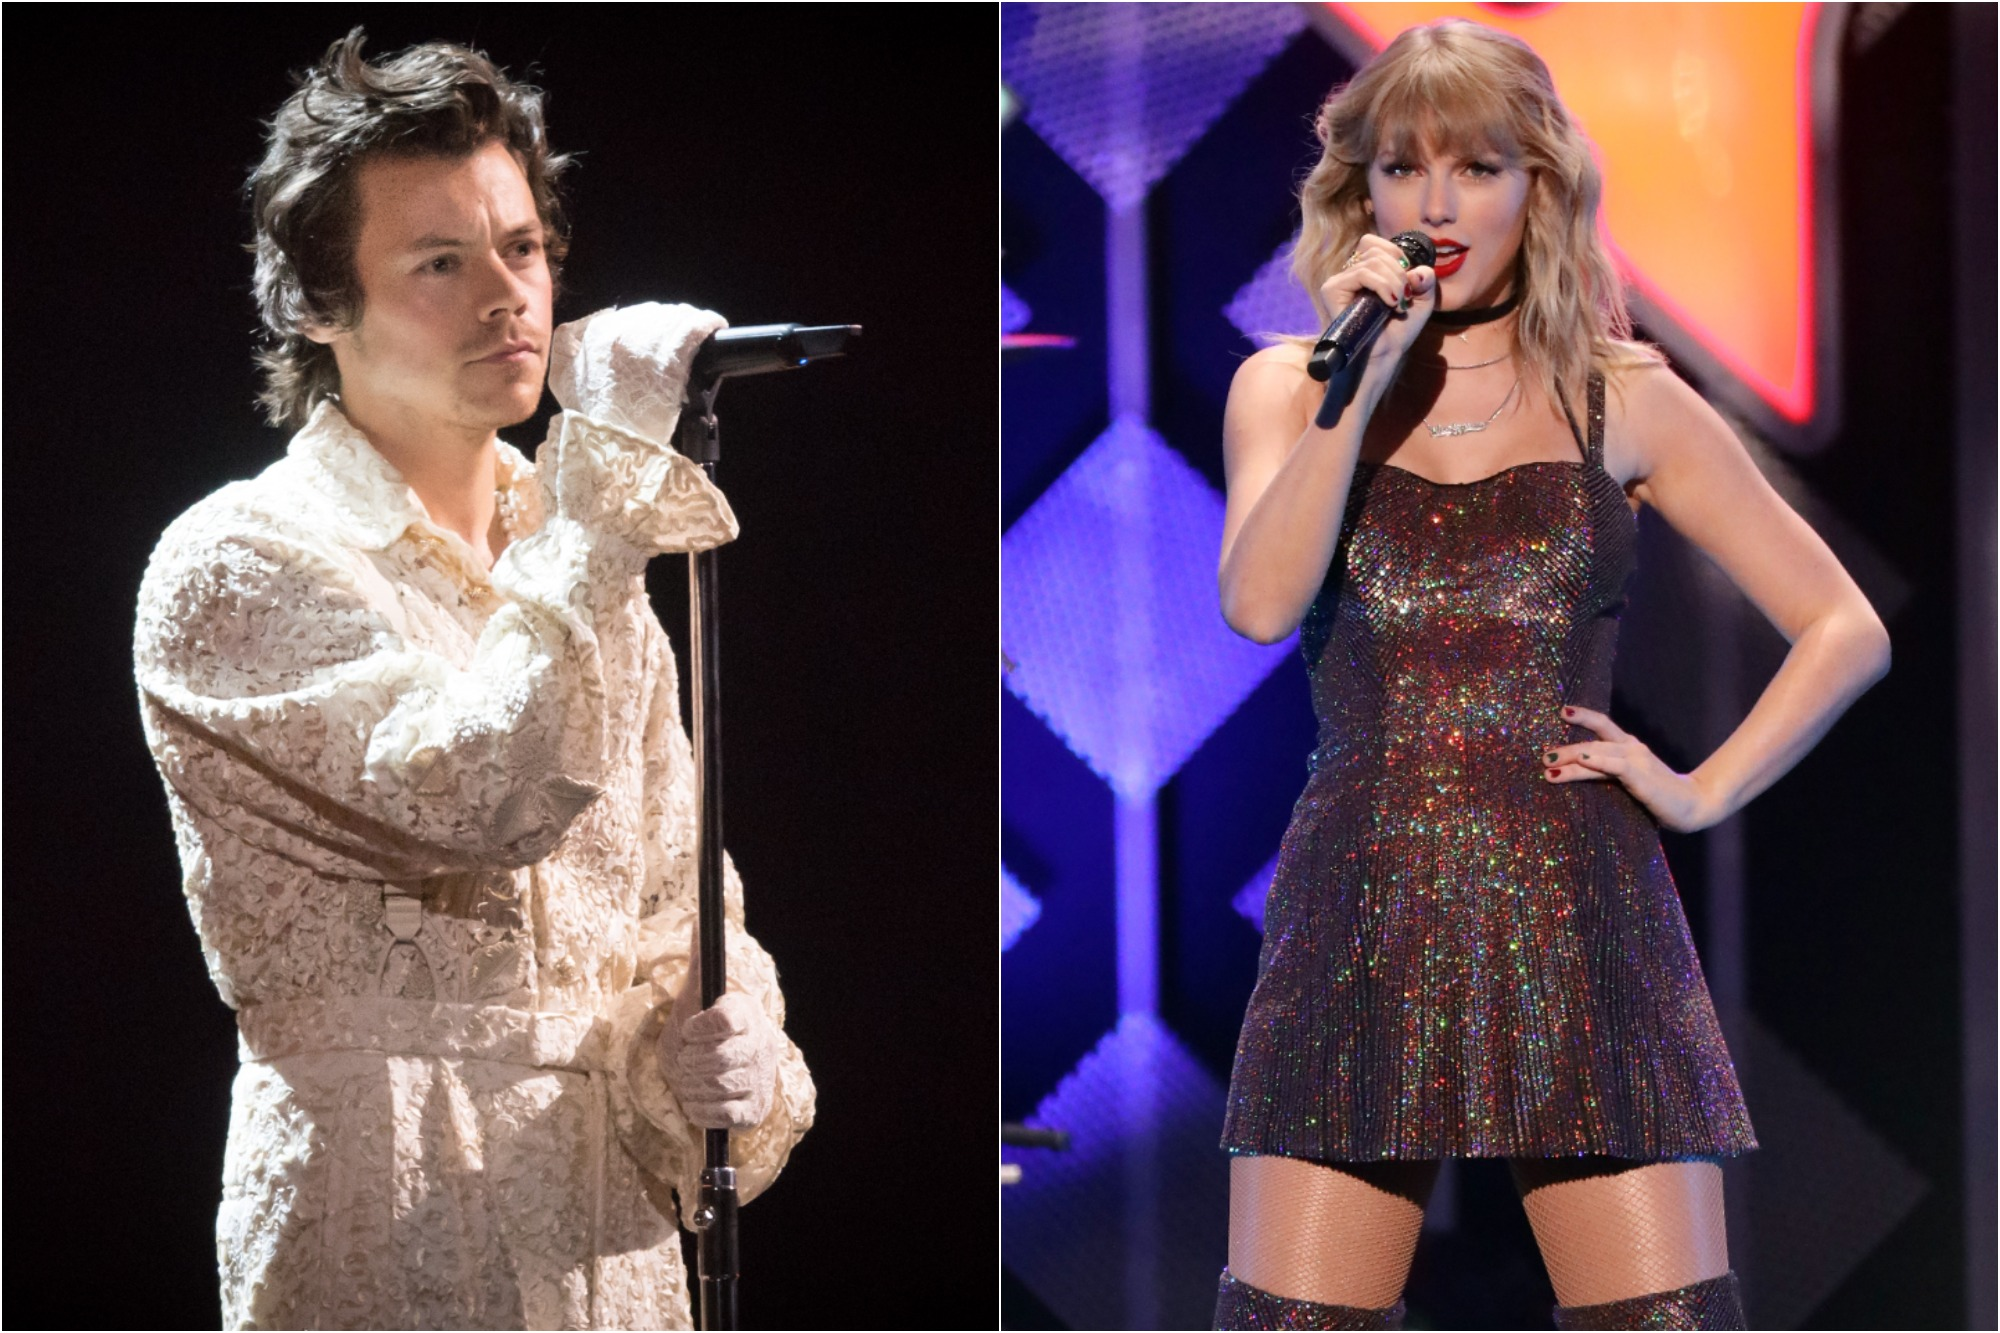 Harry Styles peforms during The BRIT Awards 2020 at The O2 Arena on Feb. 18, 2020/  Taylor Swift performs during the 2019 Z100 Jingle Ball at Madison Square Garden on Dec. 13, 2019.